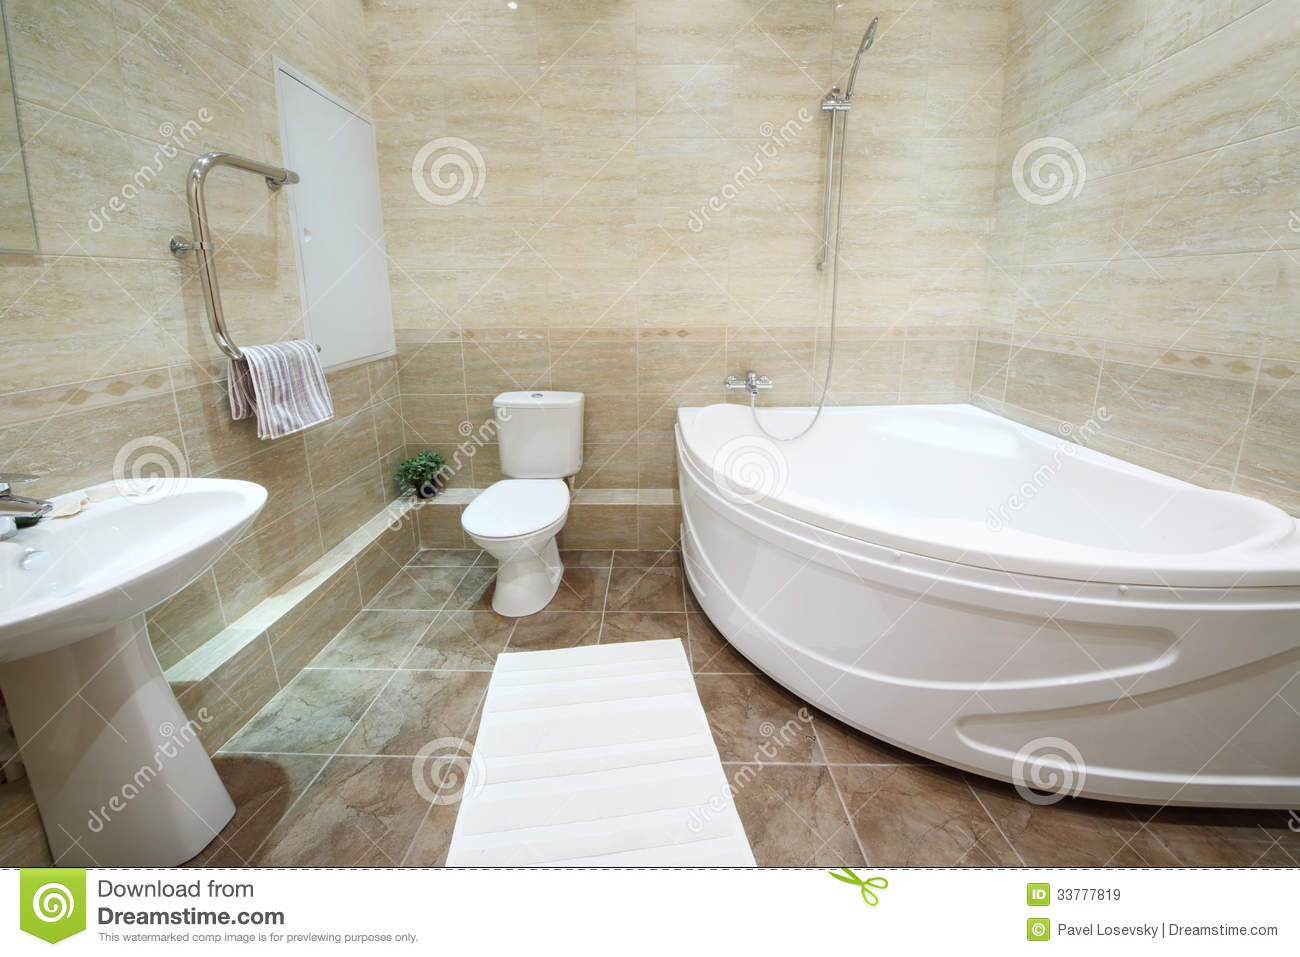 Light And Clean Bathroom With Toilet With Tiles On Floor ...